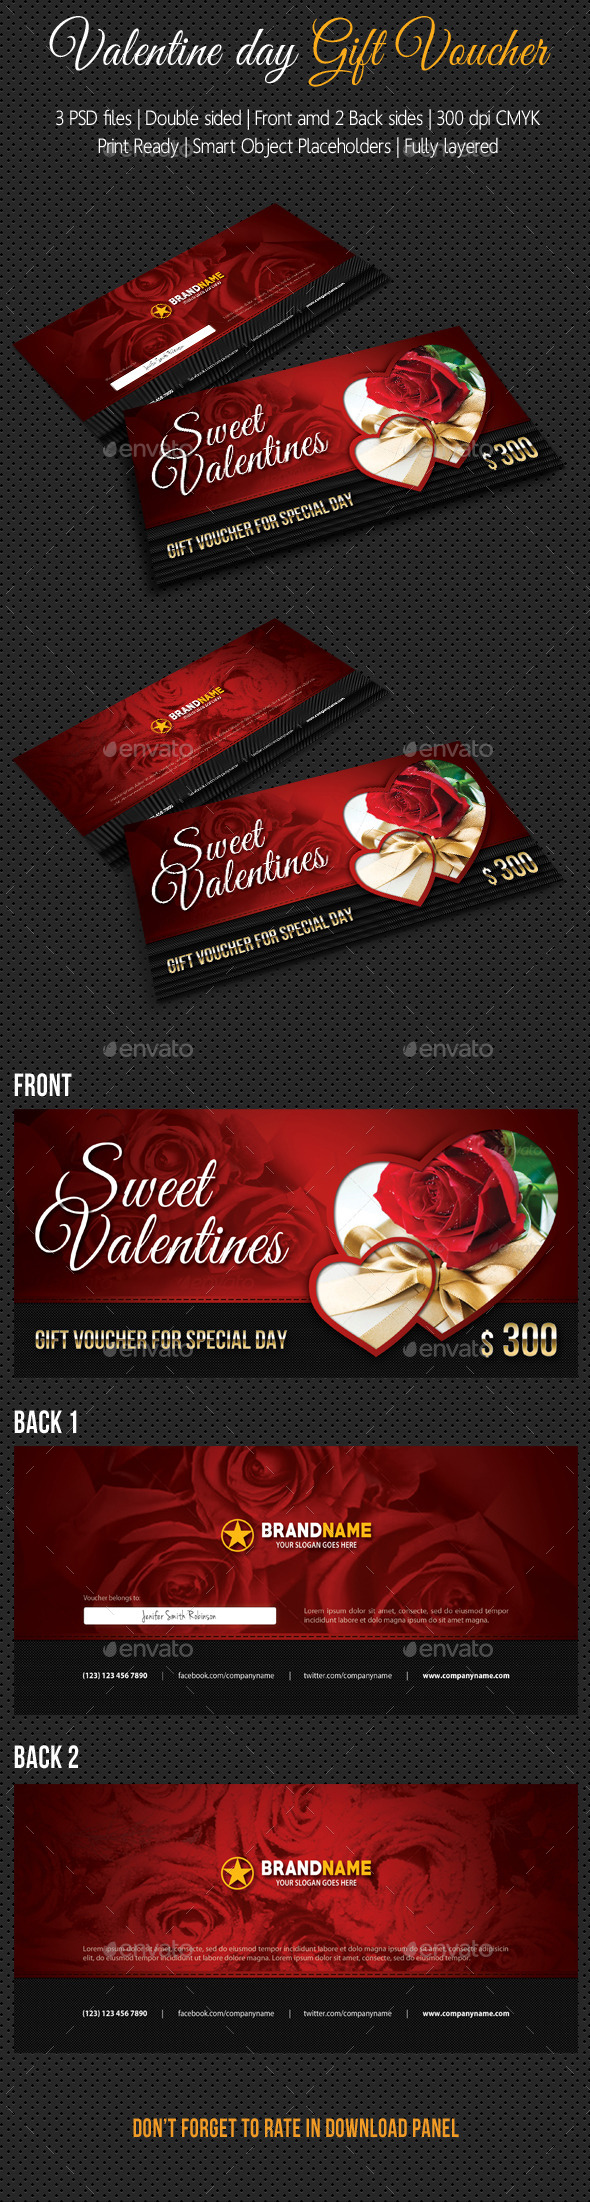 Valentines Gift Voucher - Cards & Invites Print Templates